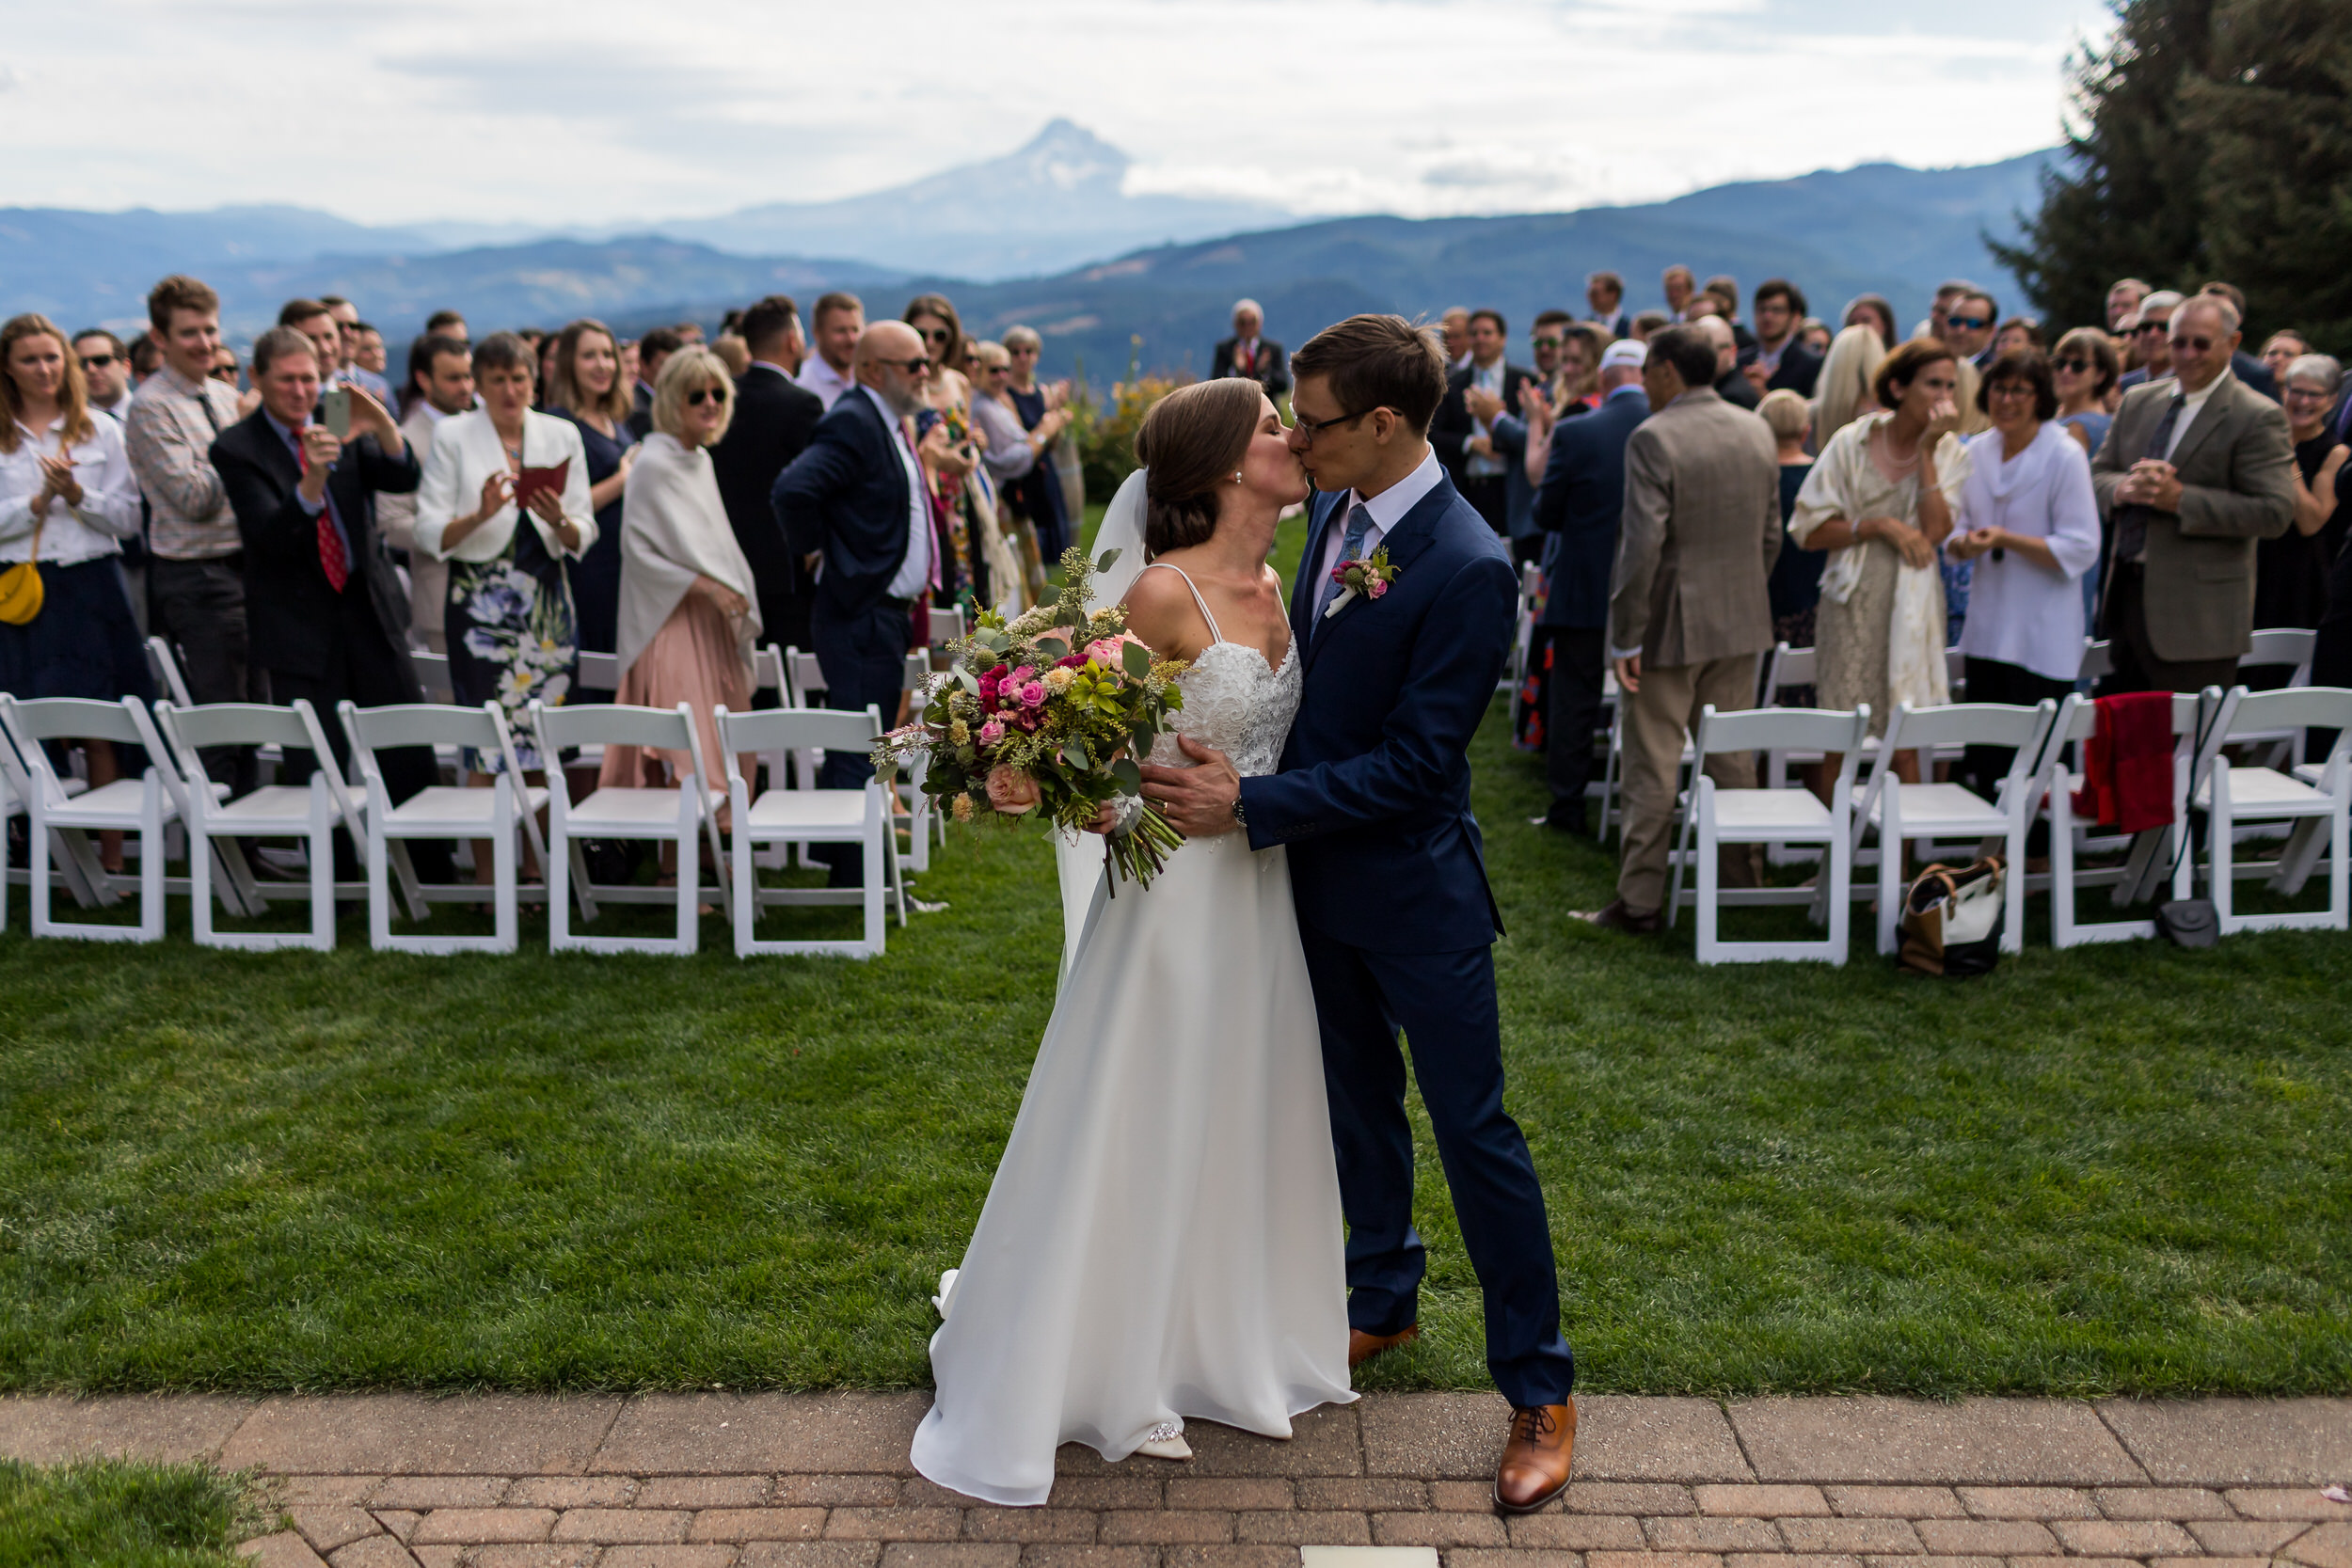 Gorge_Crest_Vineyards_Wedding_Stark_Photography_038